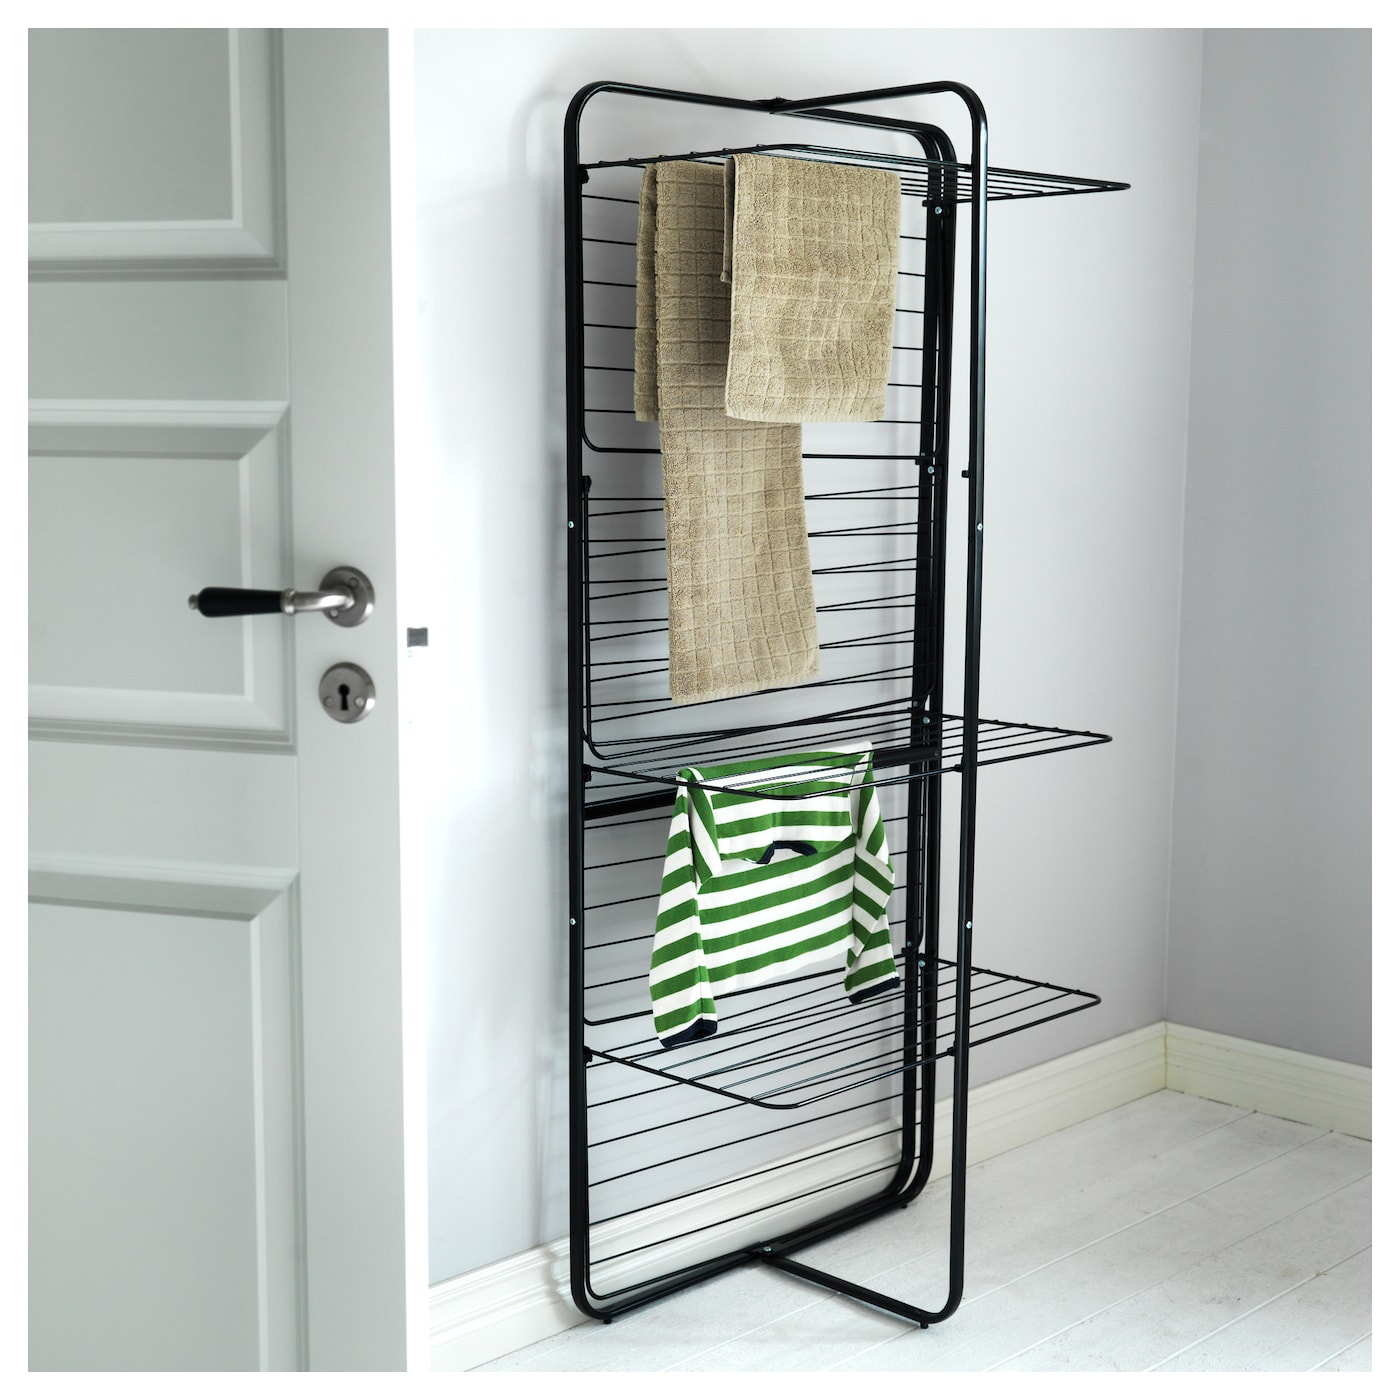 mulig-drying-rack-4-levels%252c-in%252fo